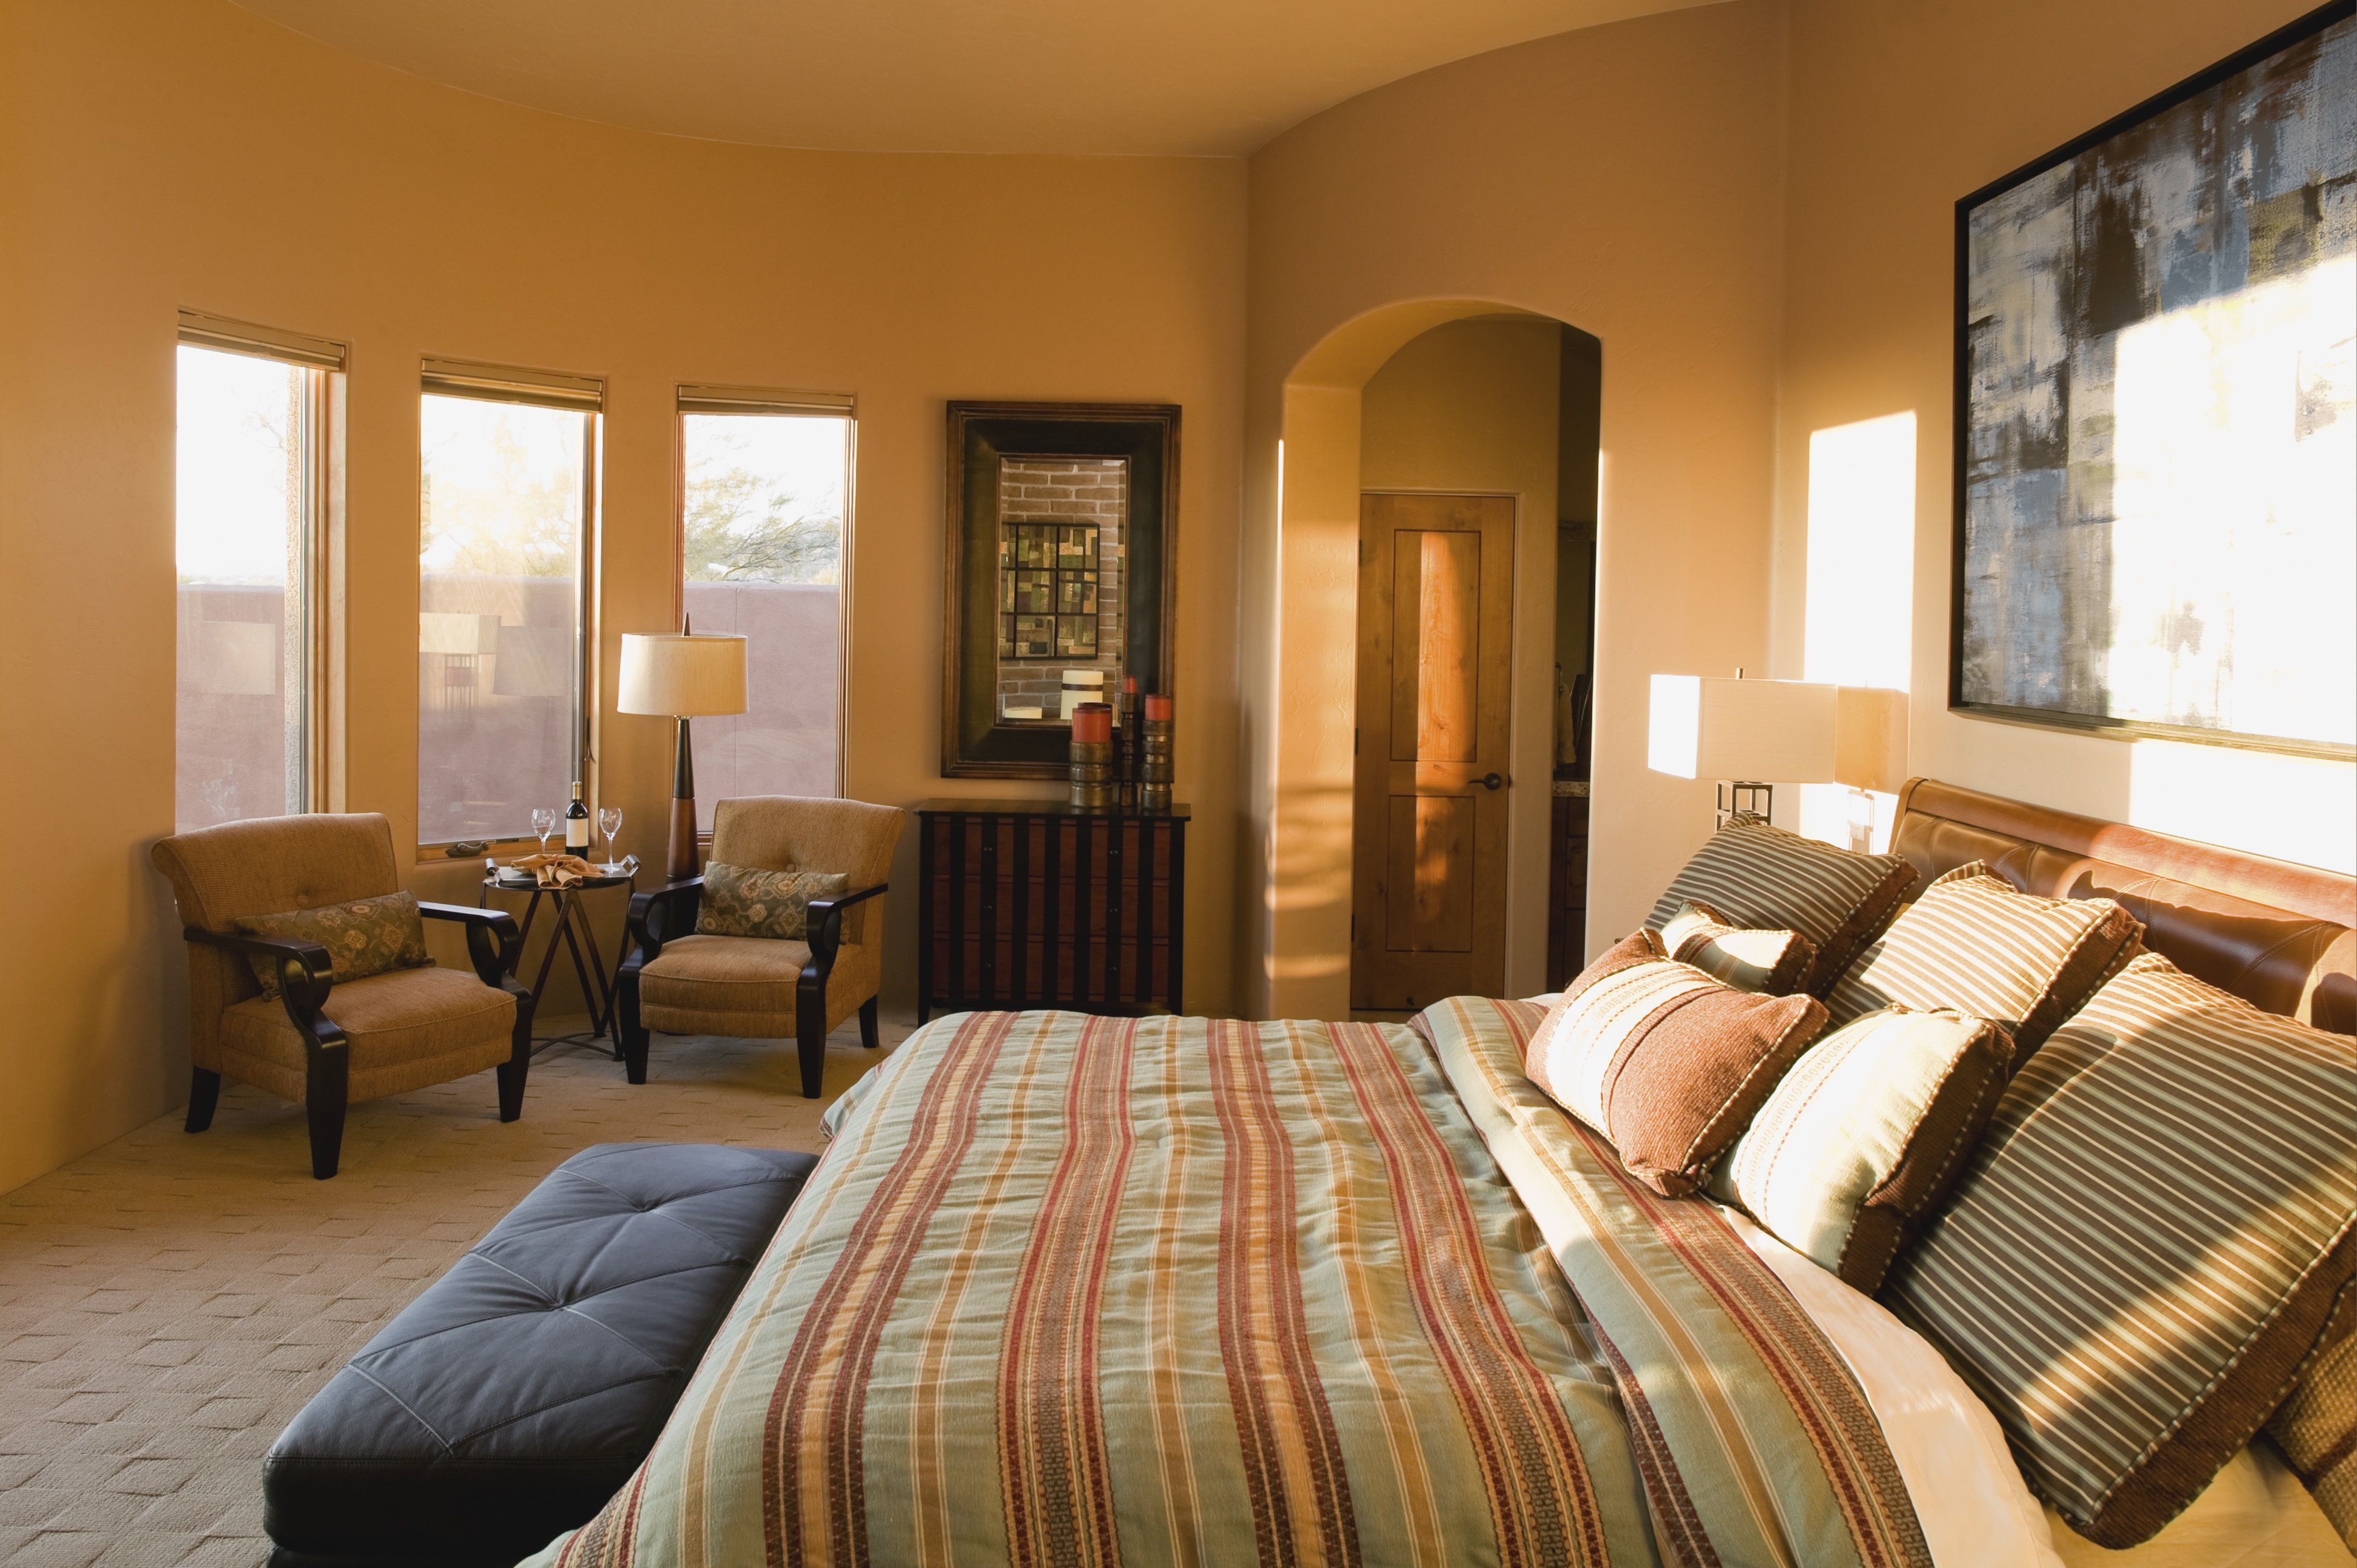 Tuscan Bedroom Decorating Ideas and Photos